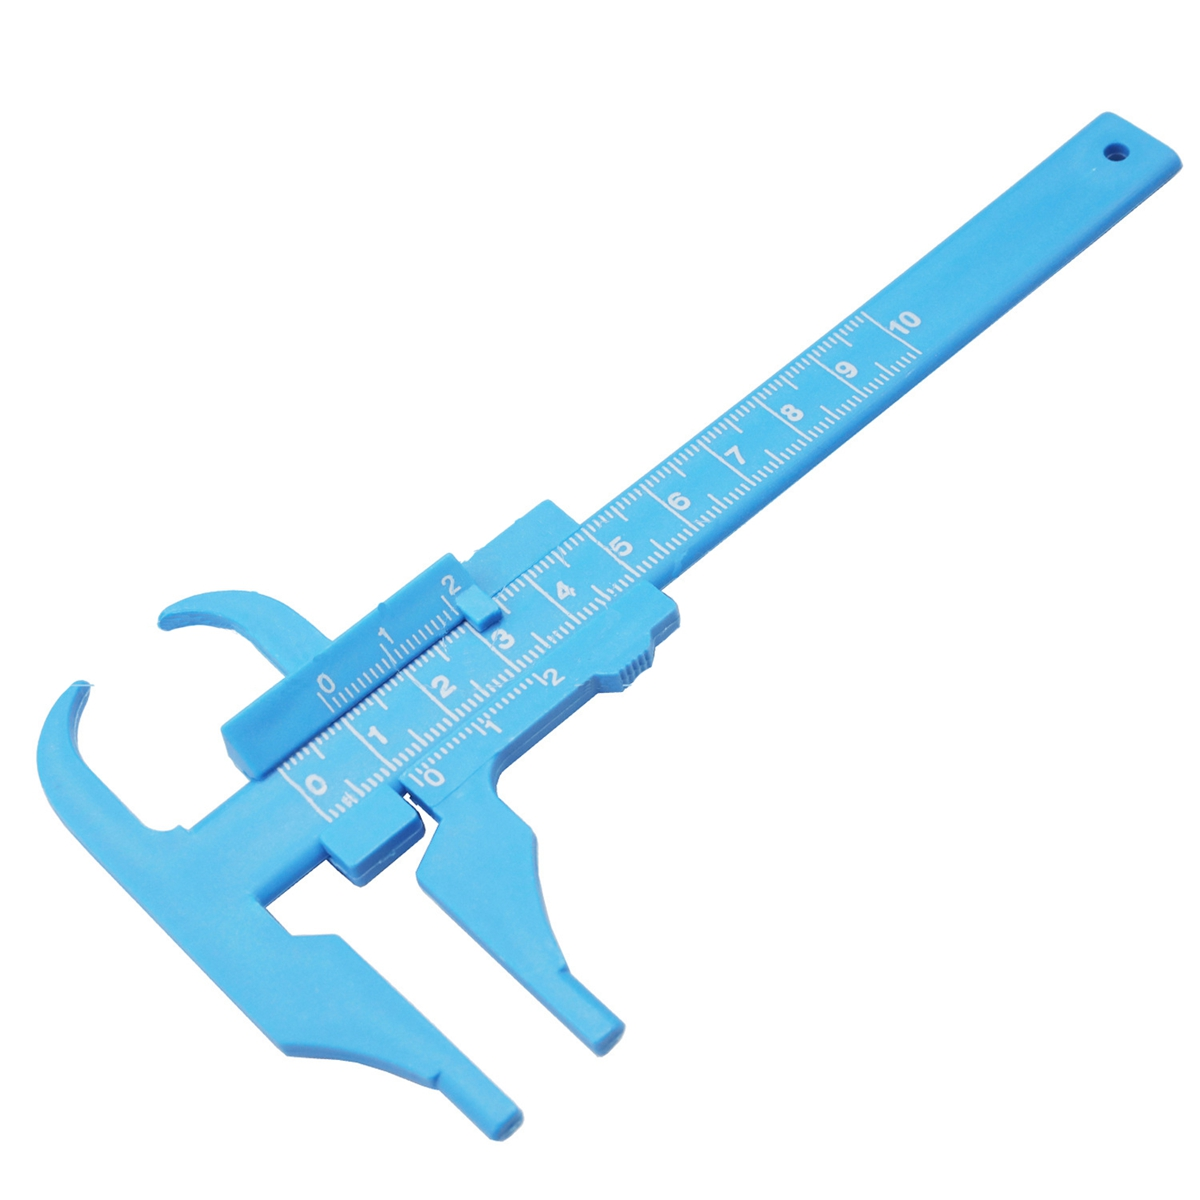 0-100MM 0.5MM Plastic Vernier Caliper Beauty Caliper